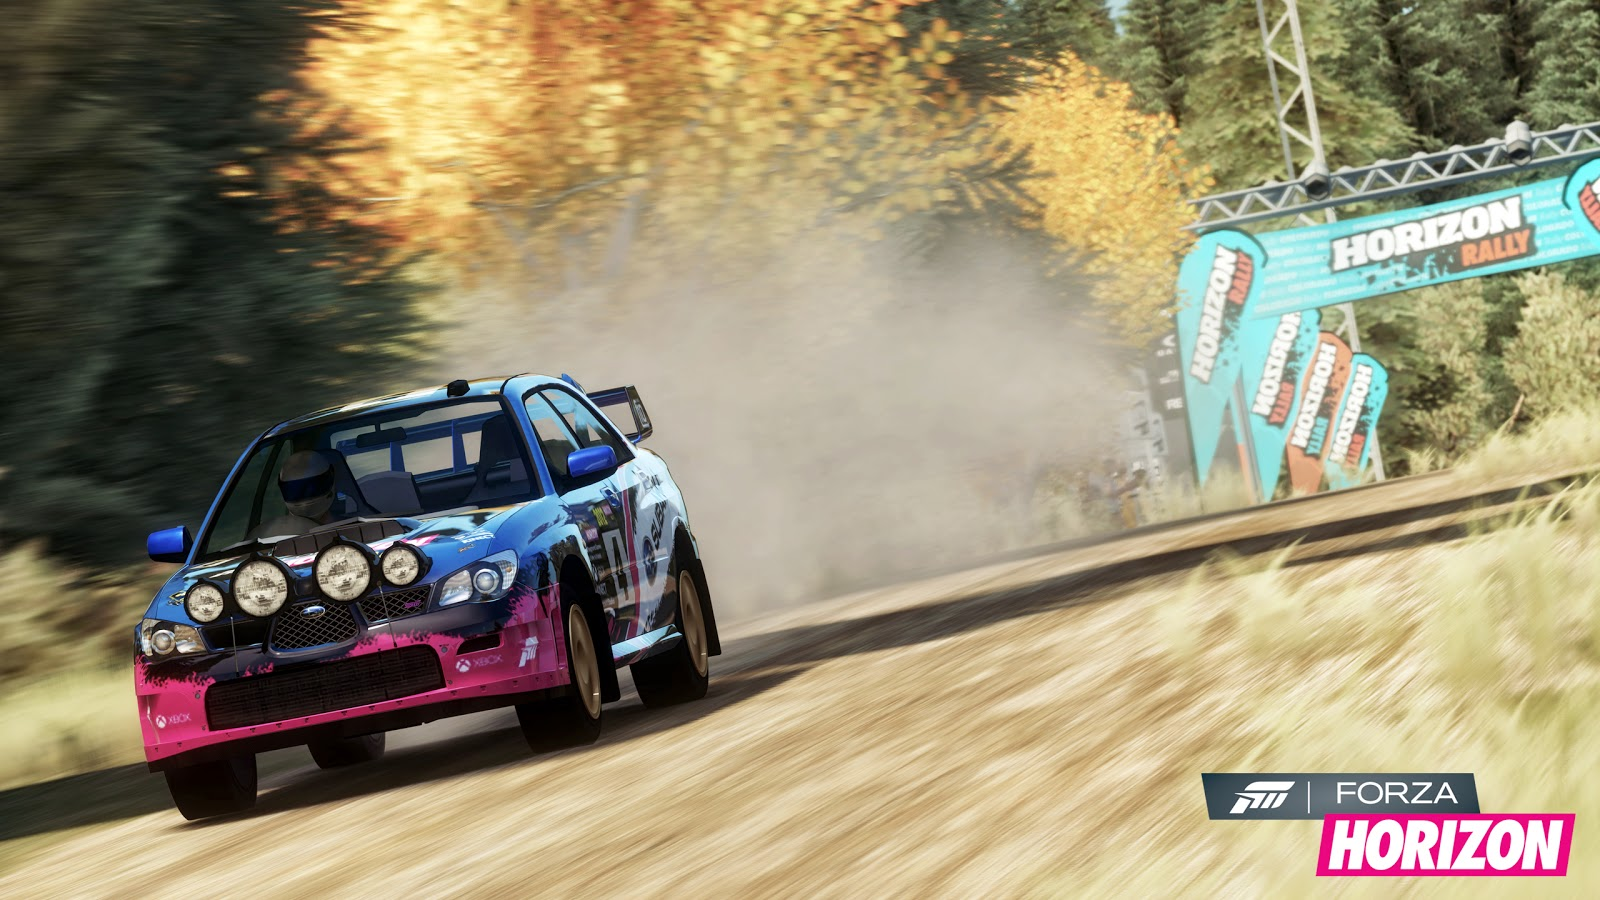 Forza Horizon HD & Widescreen Wallpaper 0.592227352225593